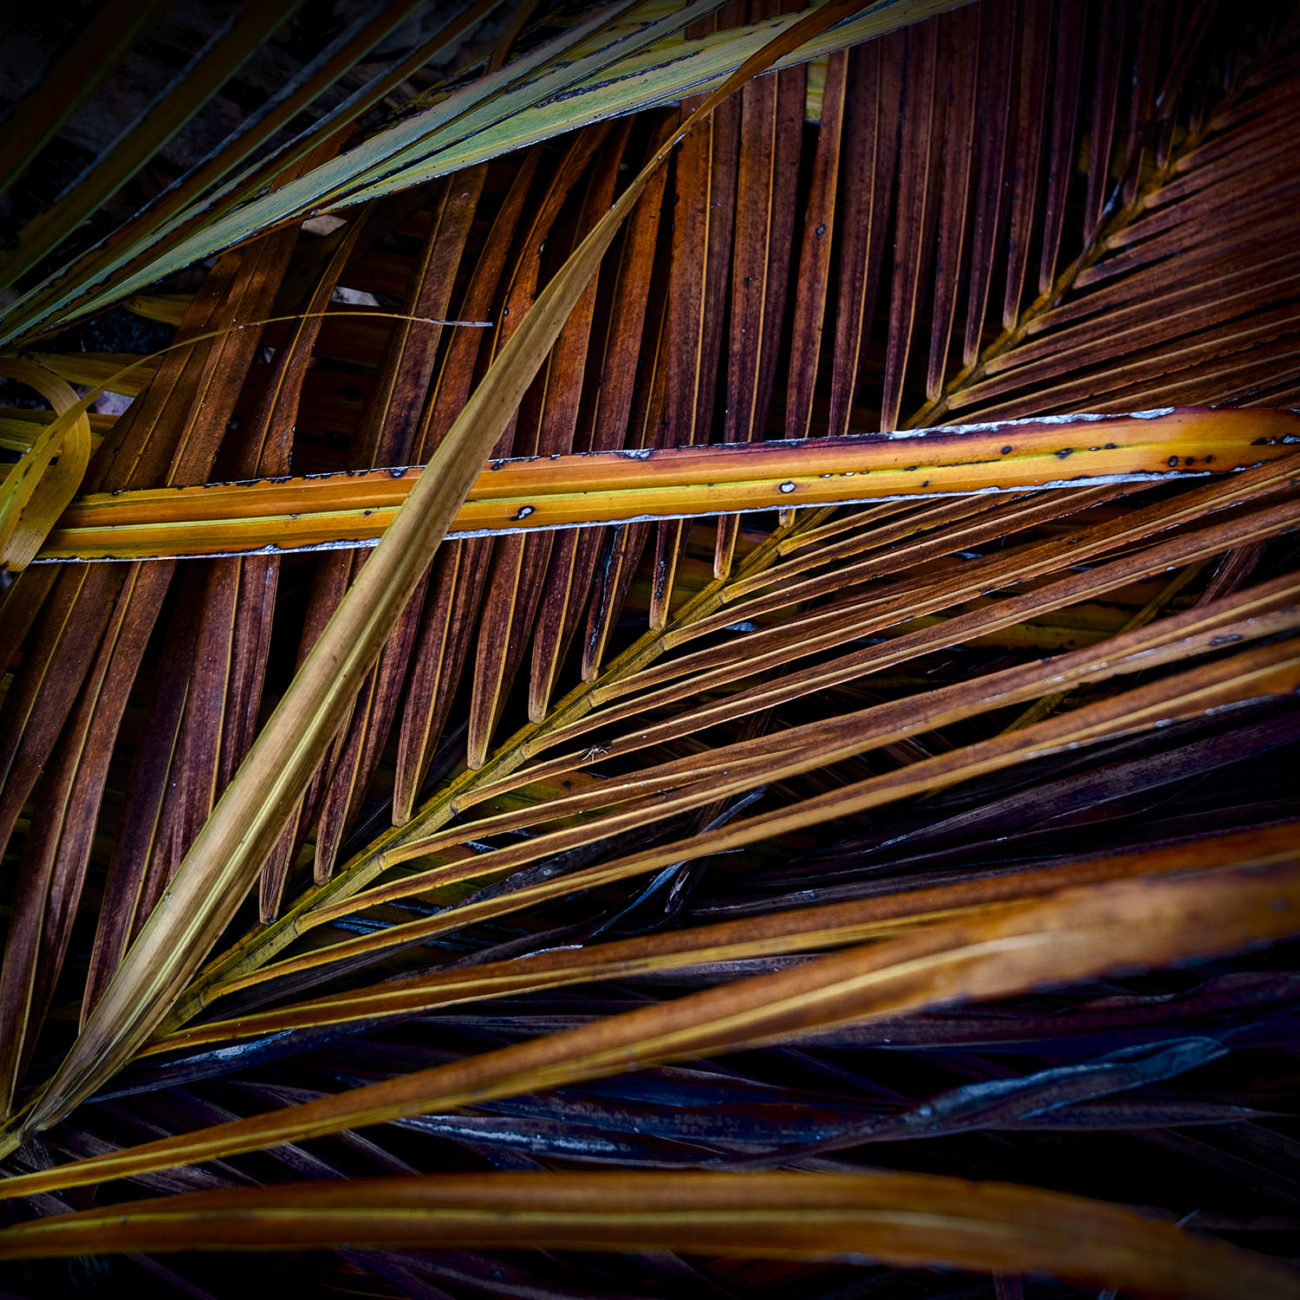 Green and yellow palm leaves, 2019